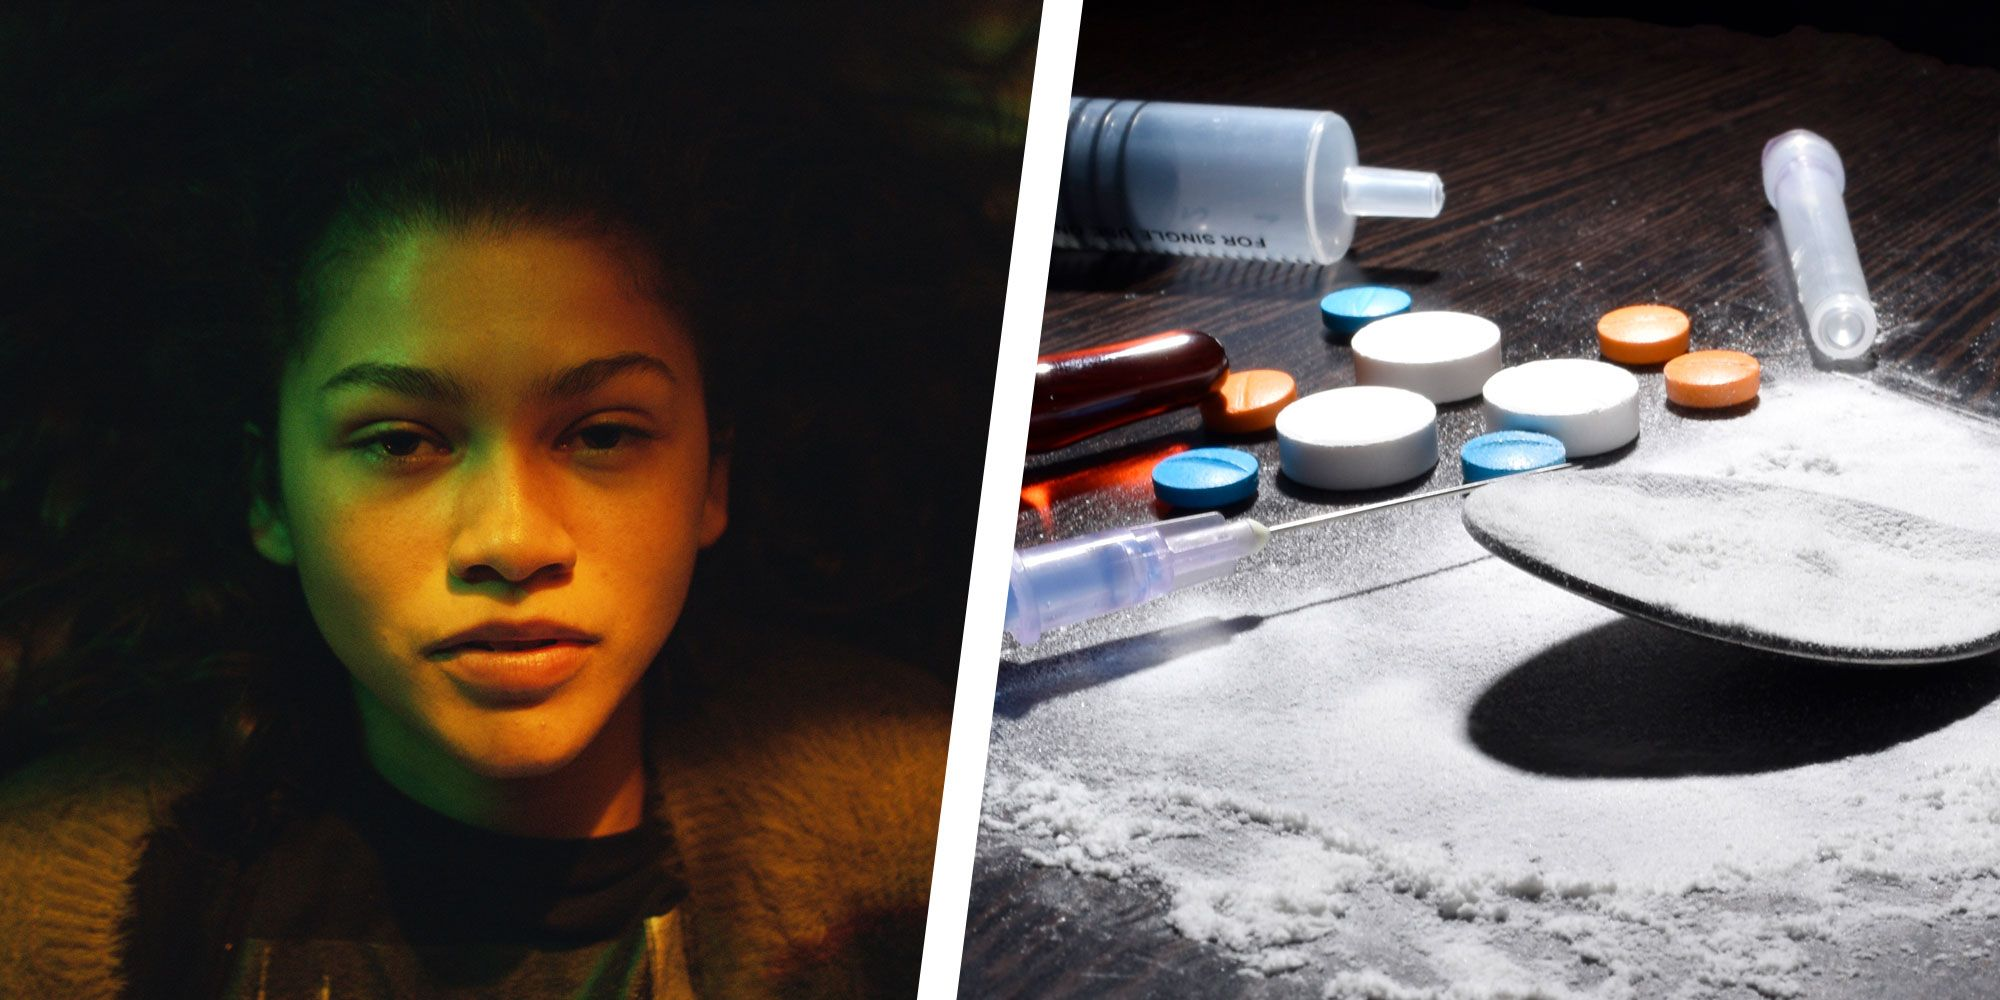 HBO's Euphoria Introduced Fentanyl. Here's What to Know About the Deadly Drug.